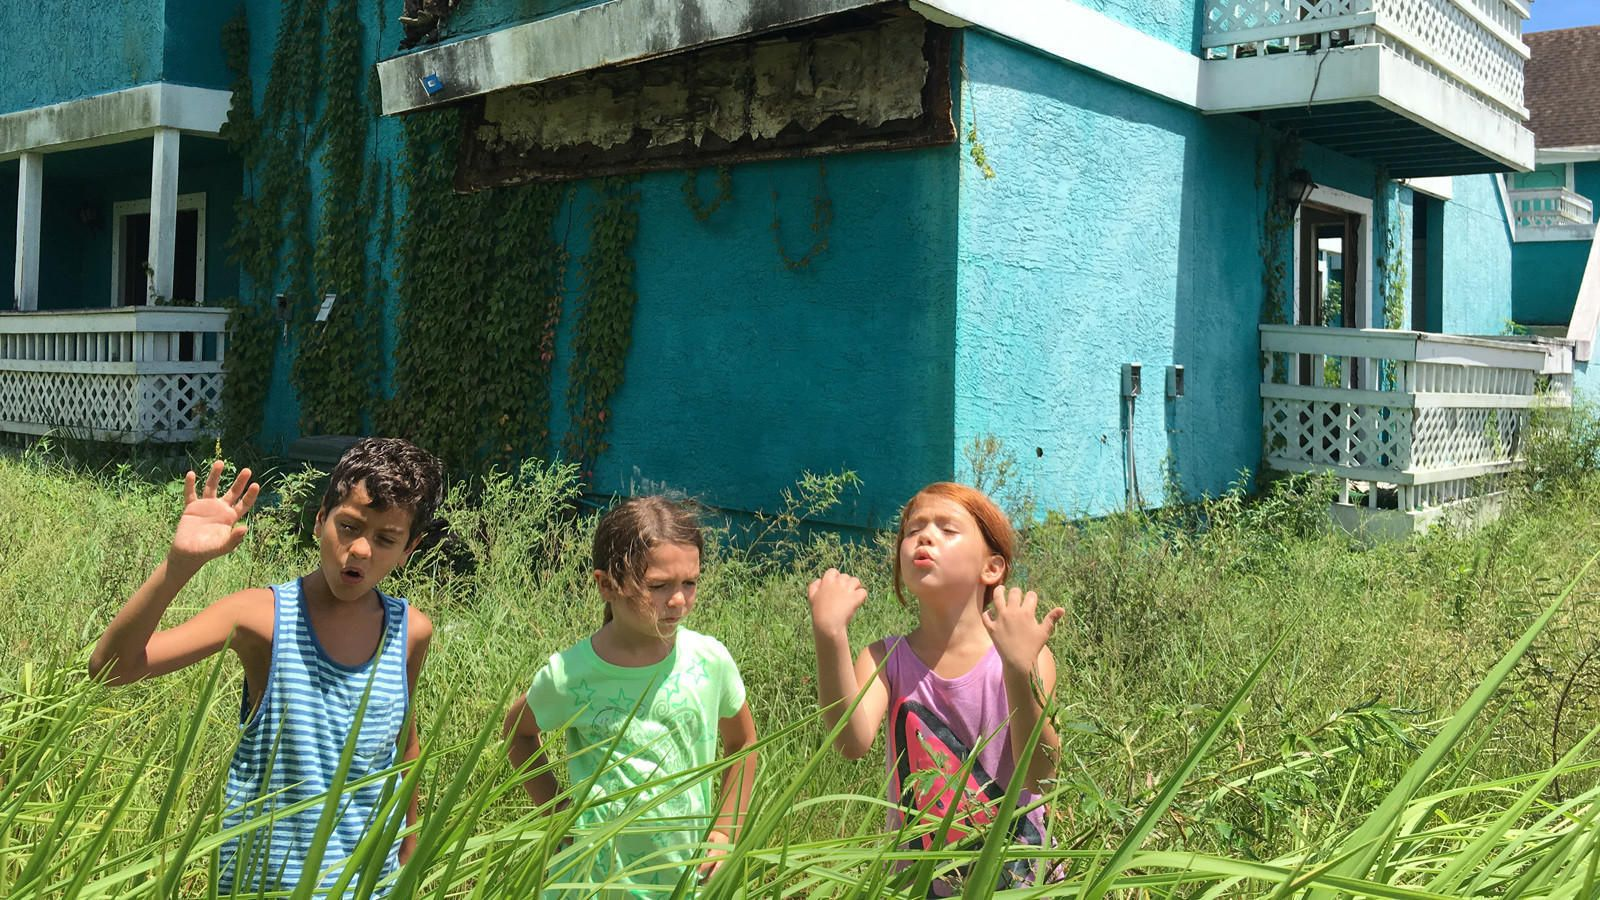 Sean Baker's 'The Florida Project' is a magnificent portrait of a ...